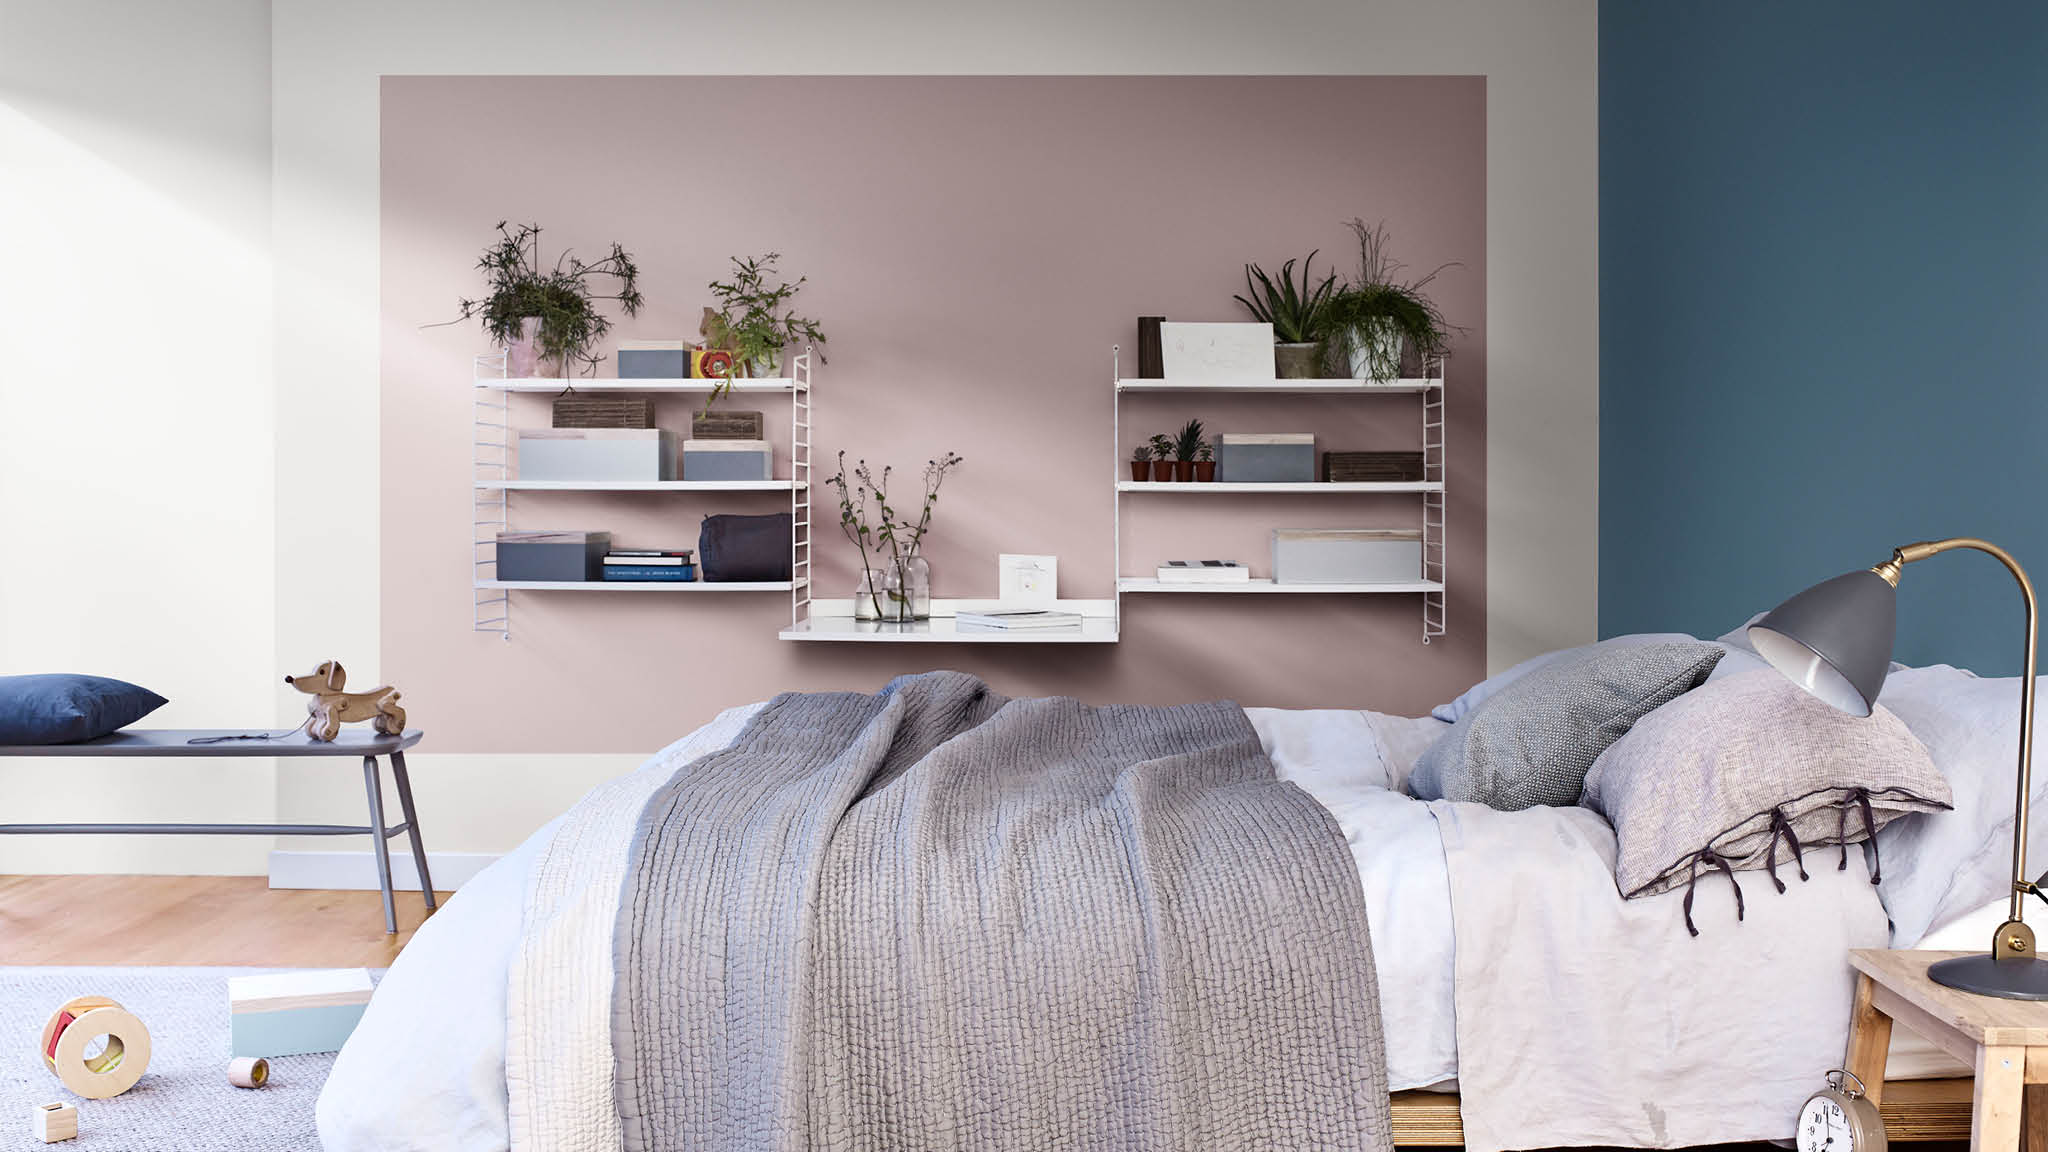 Use blue and Heart Wood to create a relaxed bedroom